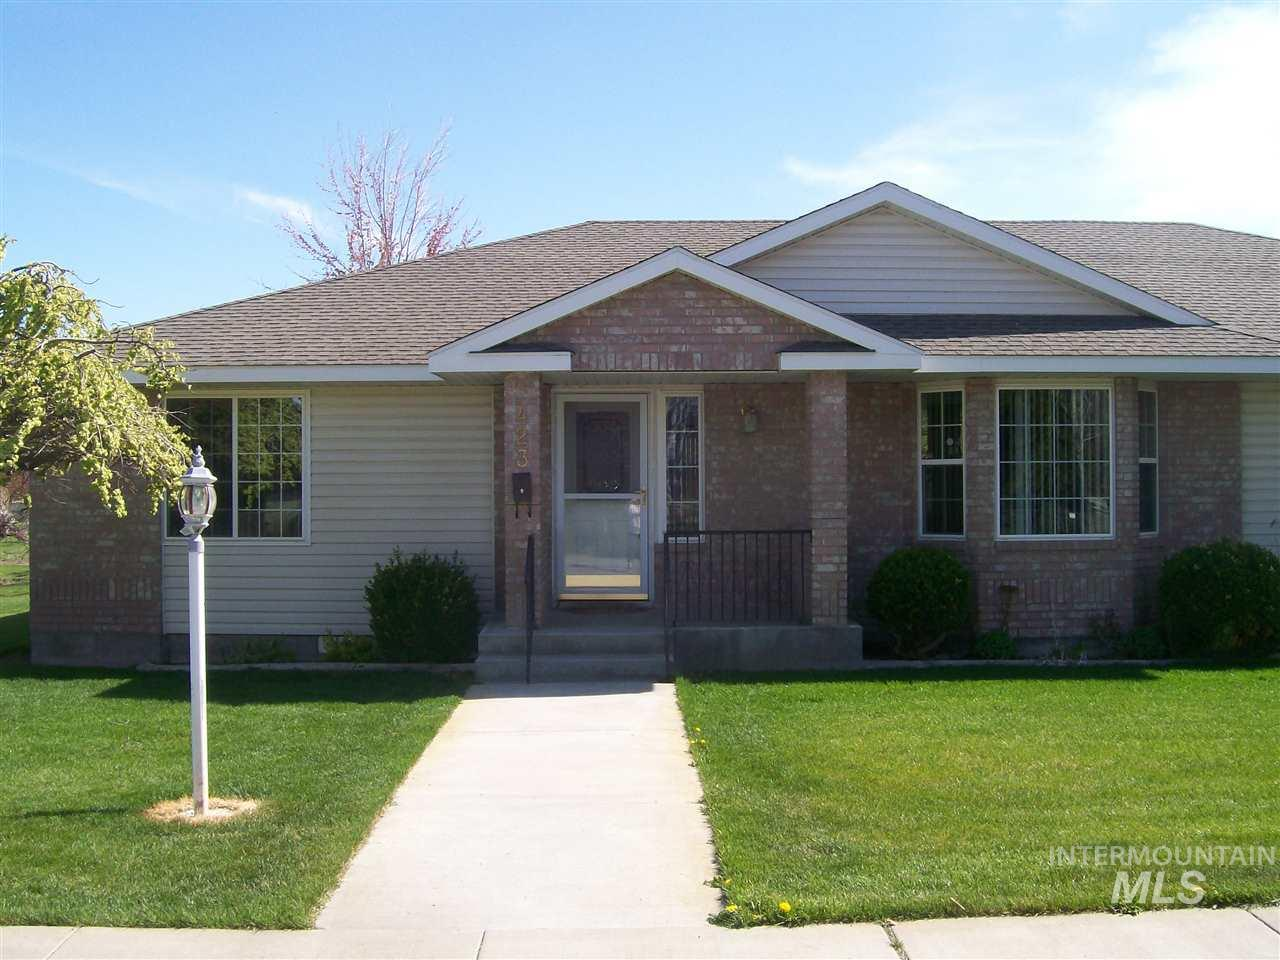 423 14th Avenue West, Gooding, ID 83330